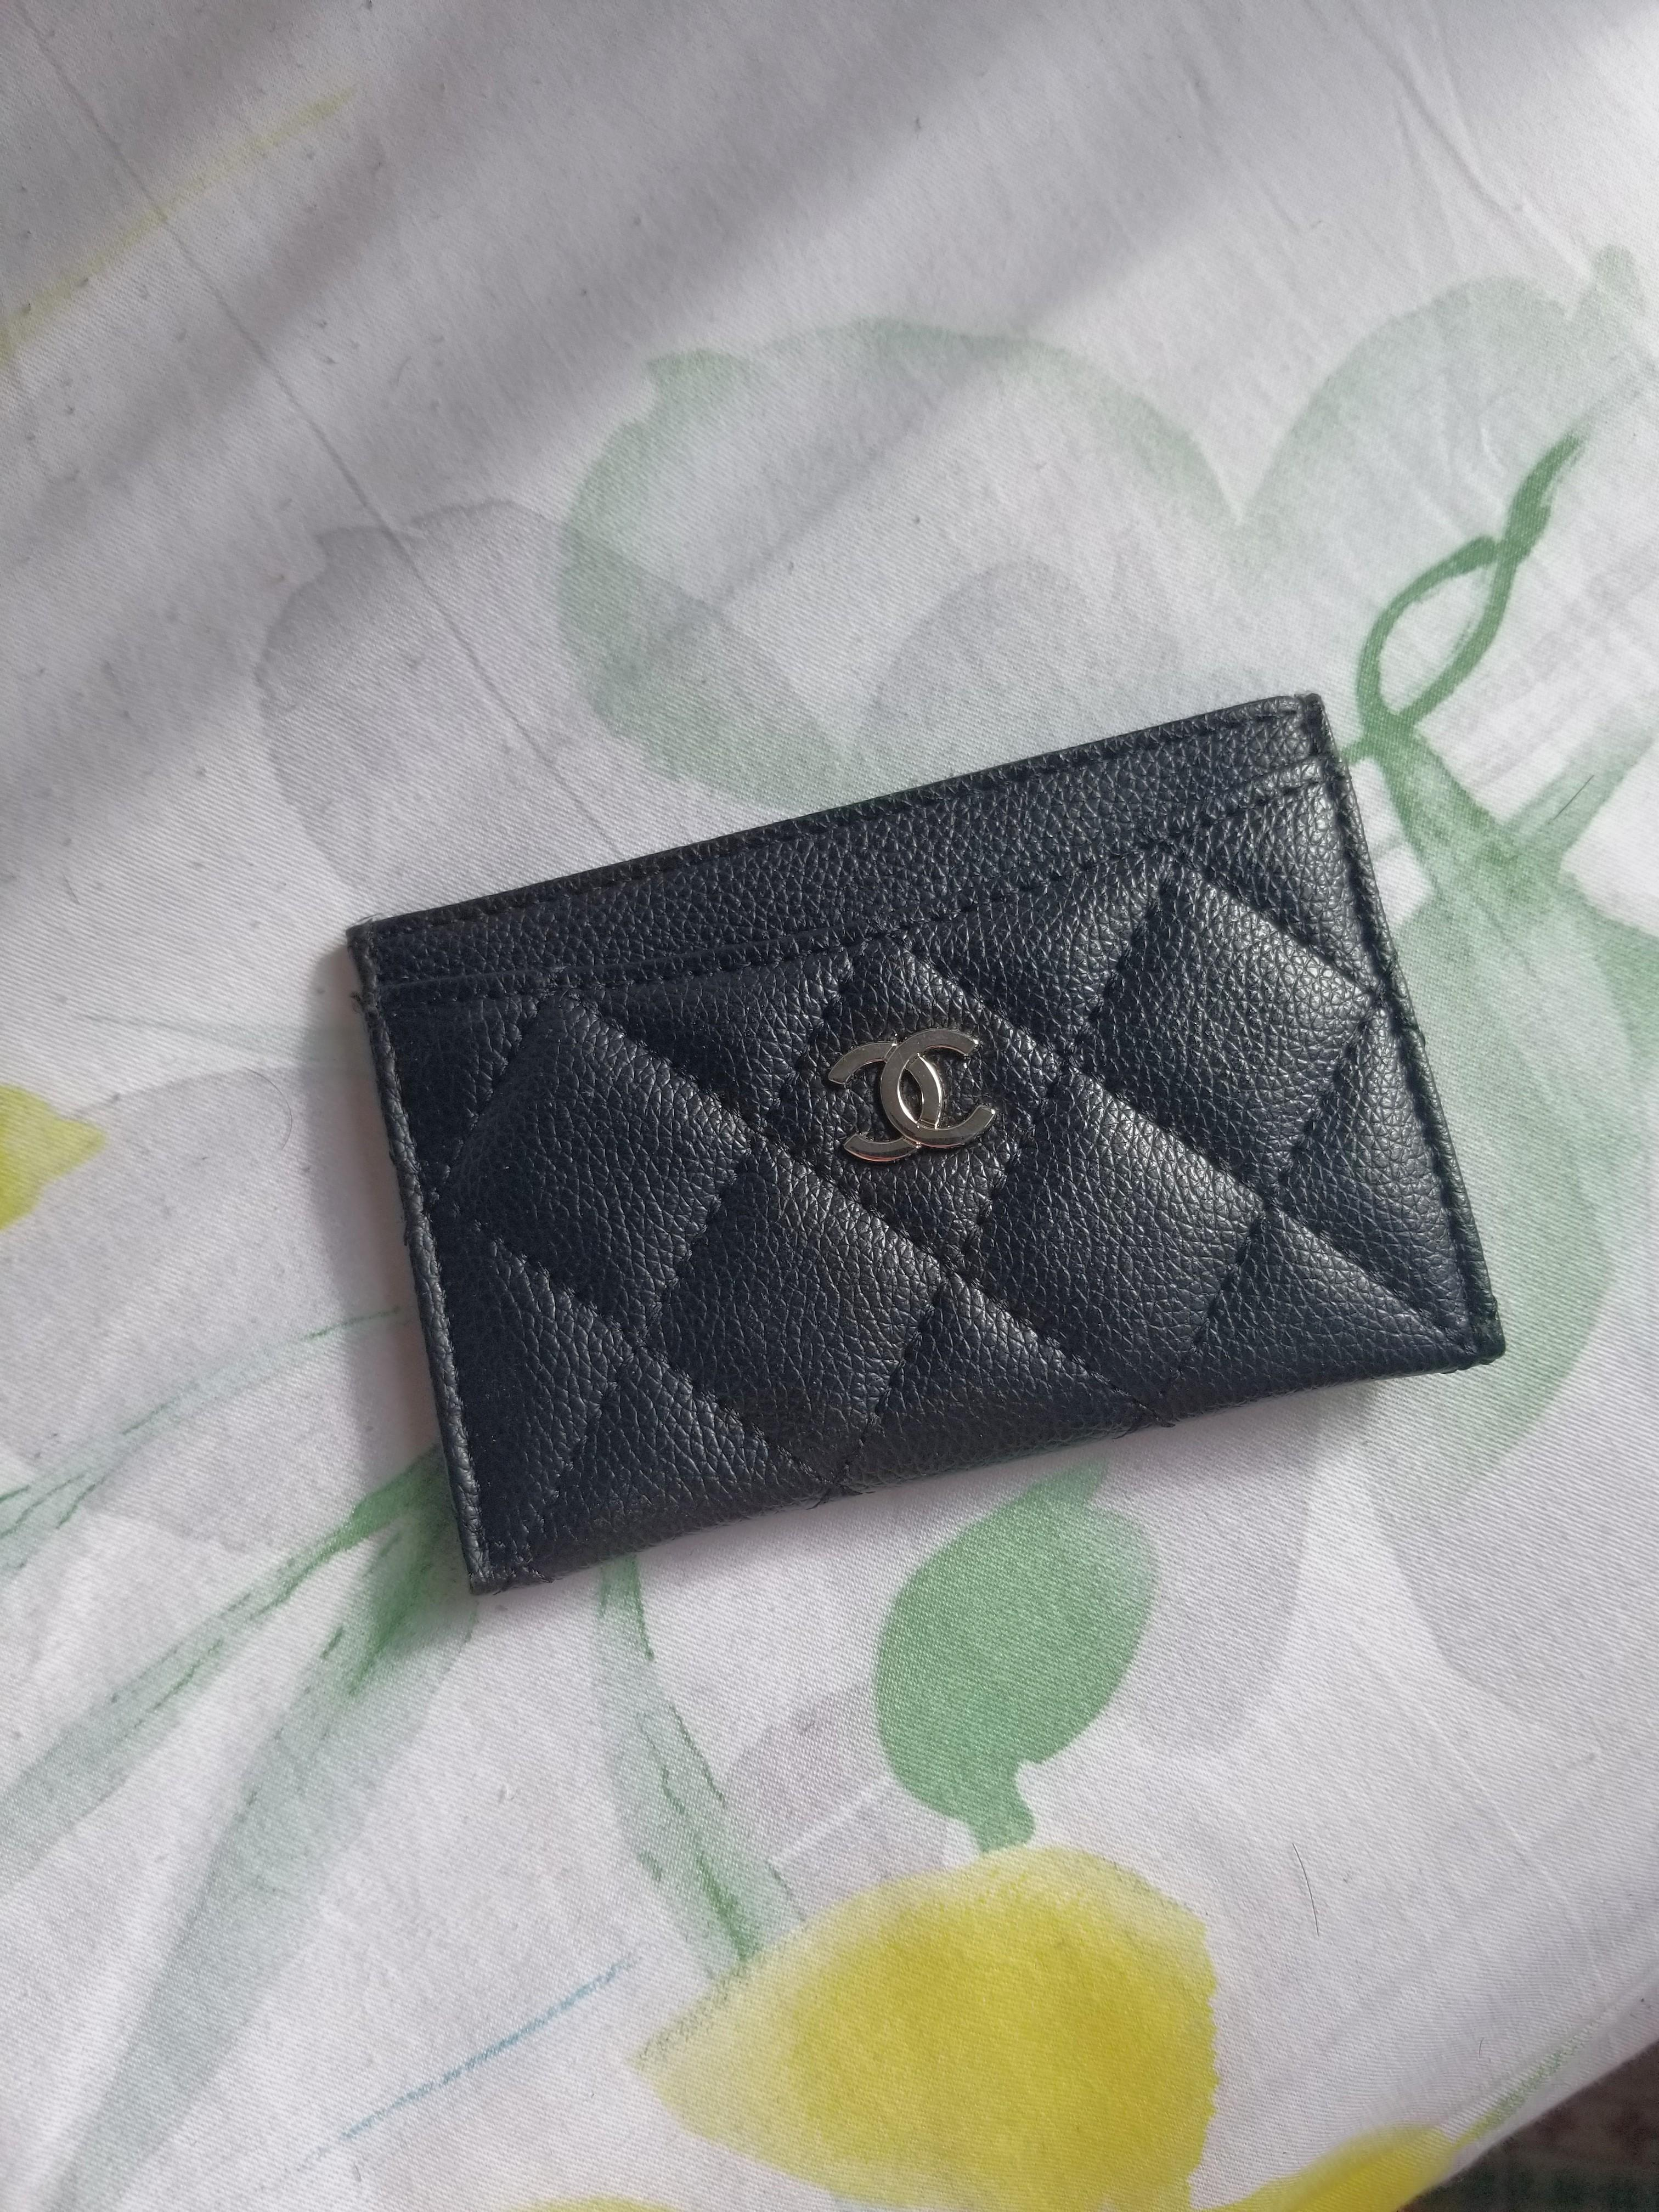 Chanel Wallet card holder 卡片套 贈品